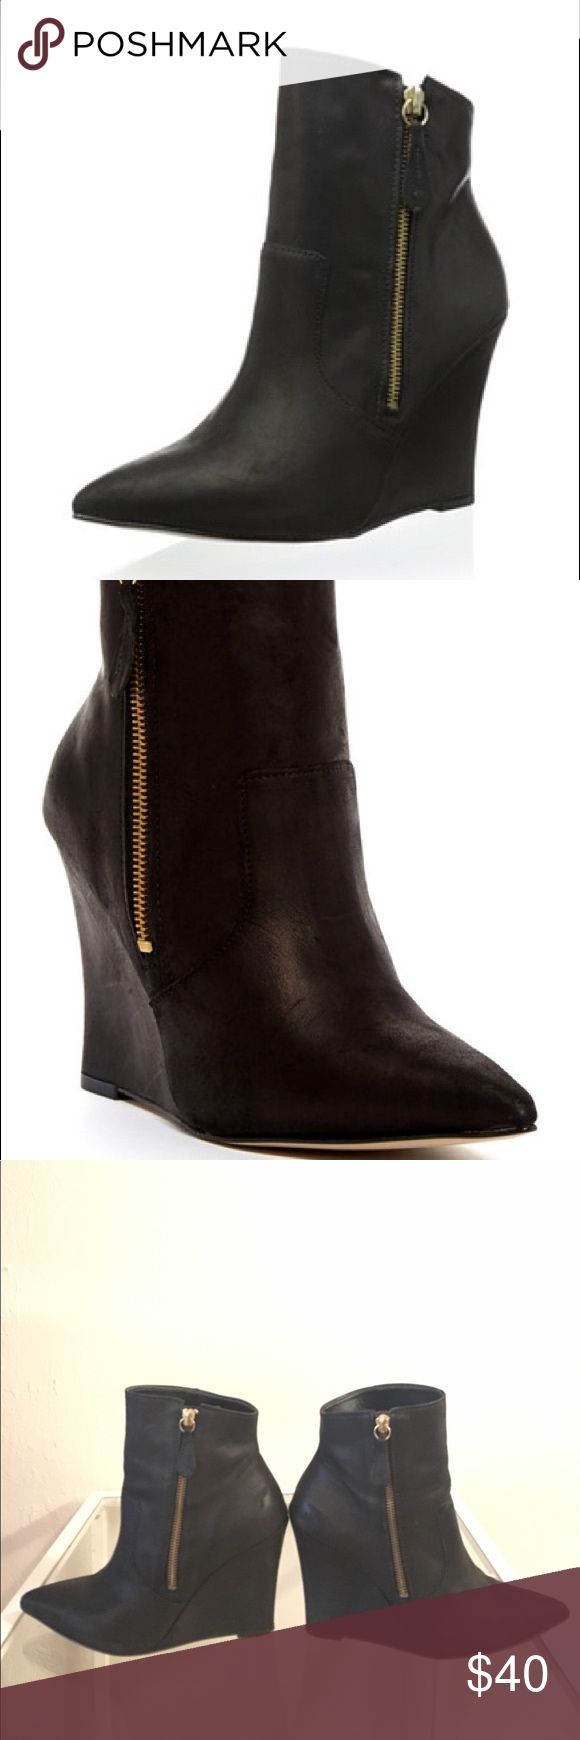 """Steven by Steve Madden Wedge Ankle Boot - Pointed toe - Pull-on with side zip opening extension - Wedge heel - Approx. 6"""" shaft height, 10.5"""" opening circumference - Approx. 4"""" heel  Boots have some wear, as seen in the images. But definitely still present well, no serious tears or marks. 4"""" high but the Wedge makes them easy to walk in.   Fit true to size. Pet free, smoke free household. No odors. These zip booties look great with jeans or skirts! Steven By Steve Madden Shoes Ankle Boots…"""